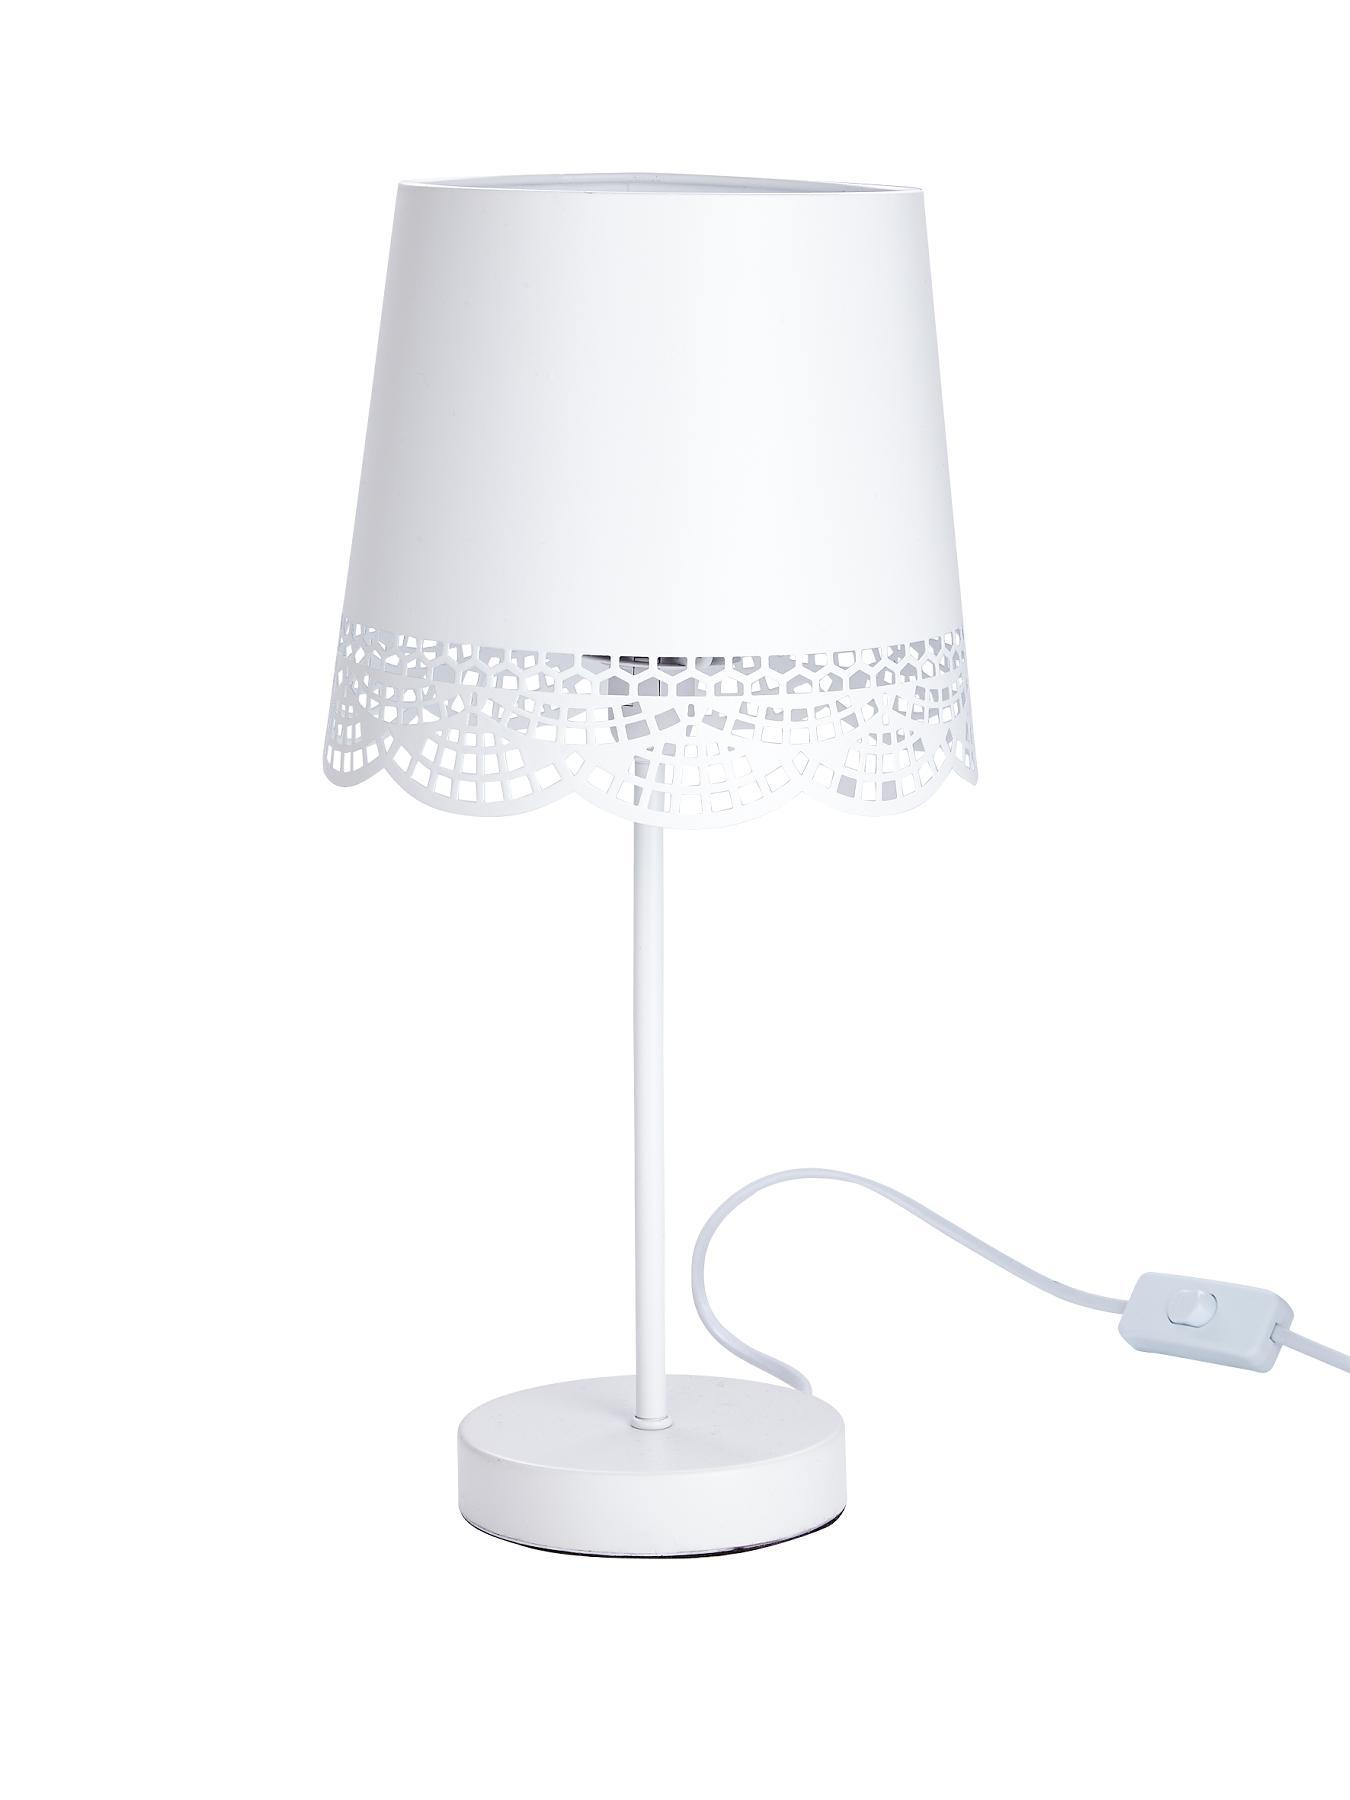 Layla Table Lamp - White, White